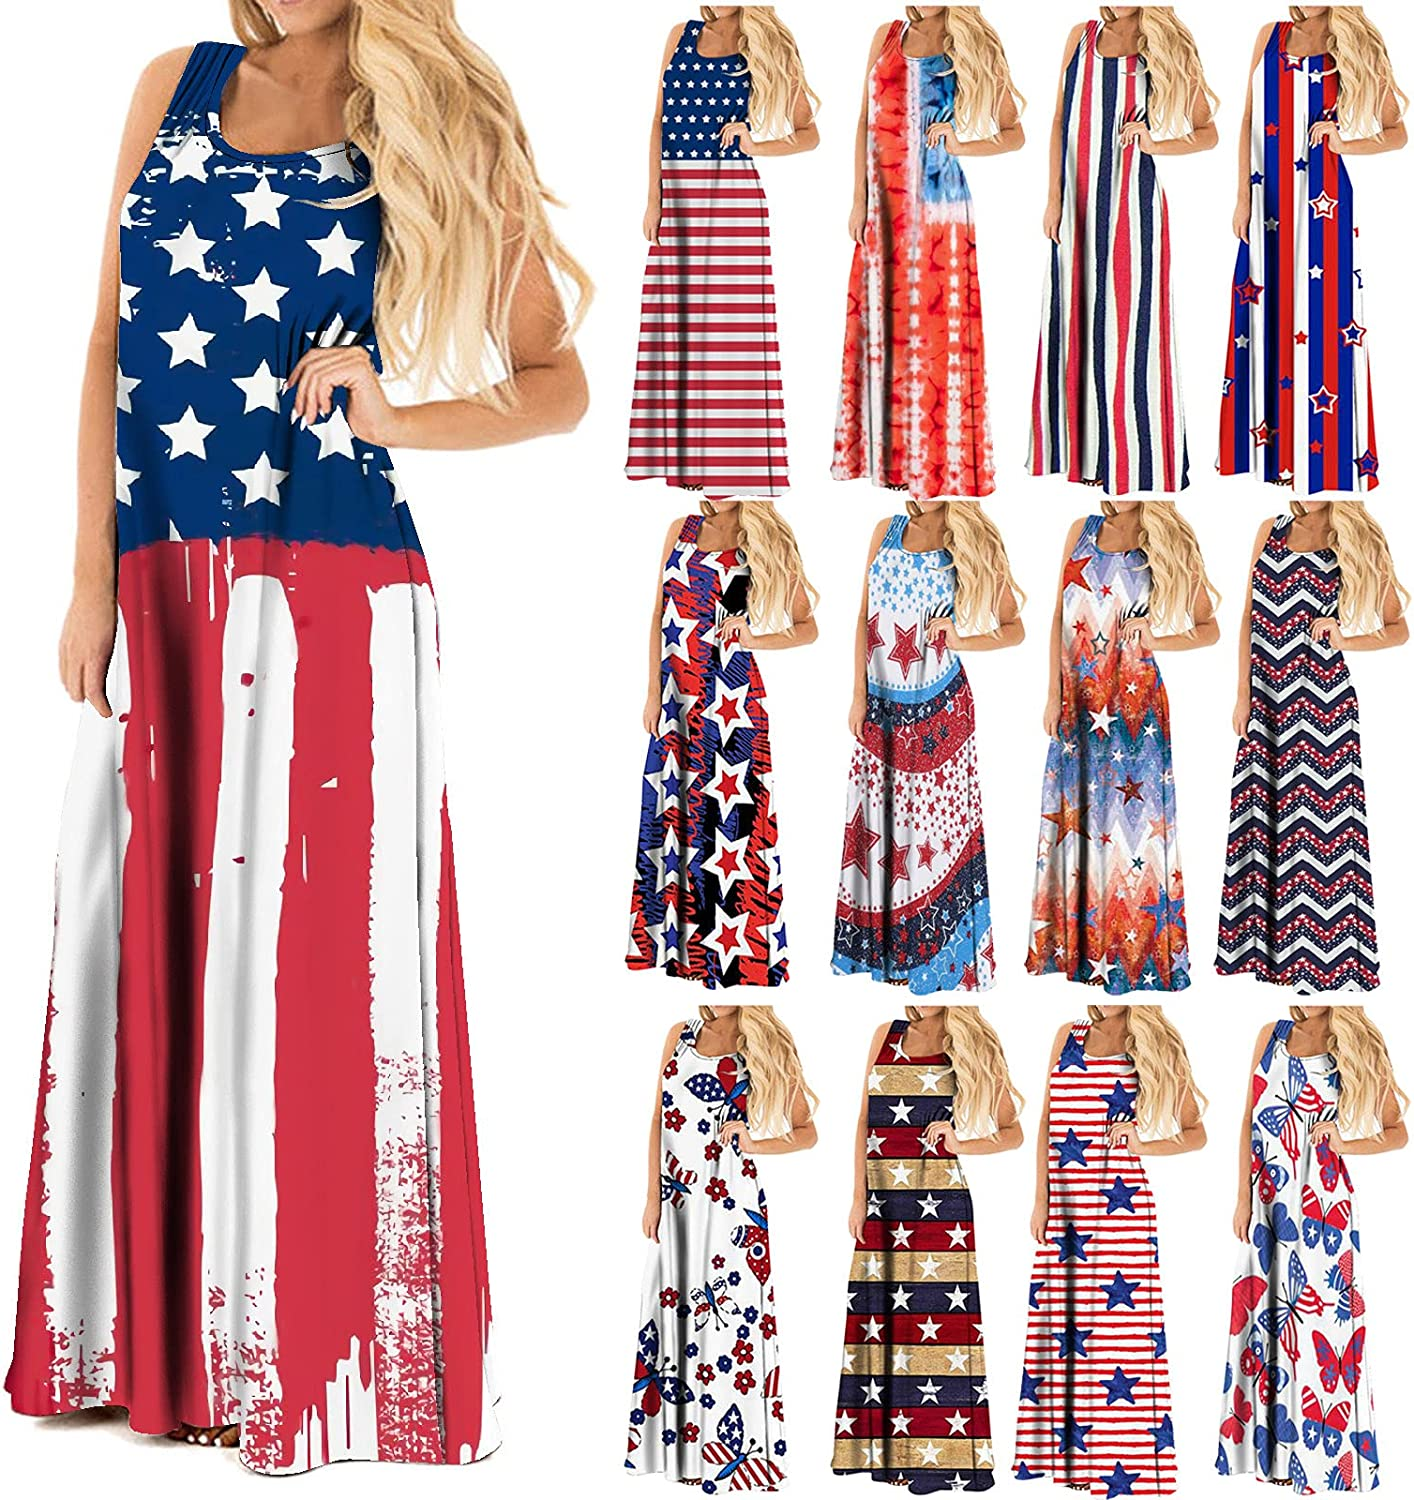 Smooto 2021 Summer Dress for Women Independence Day Festival Printed Maxi Dress